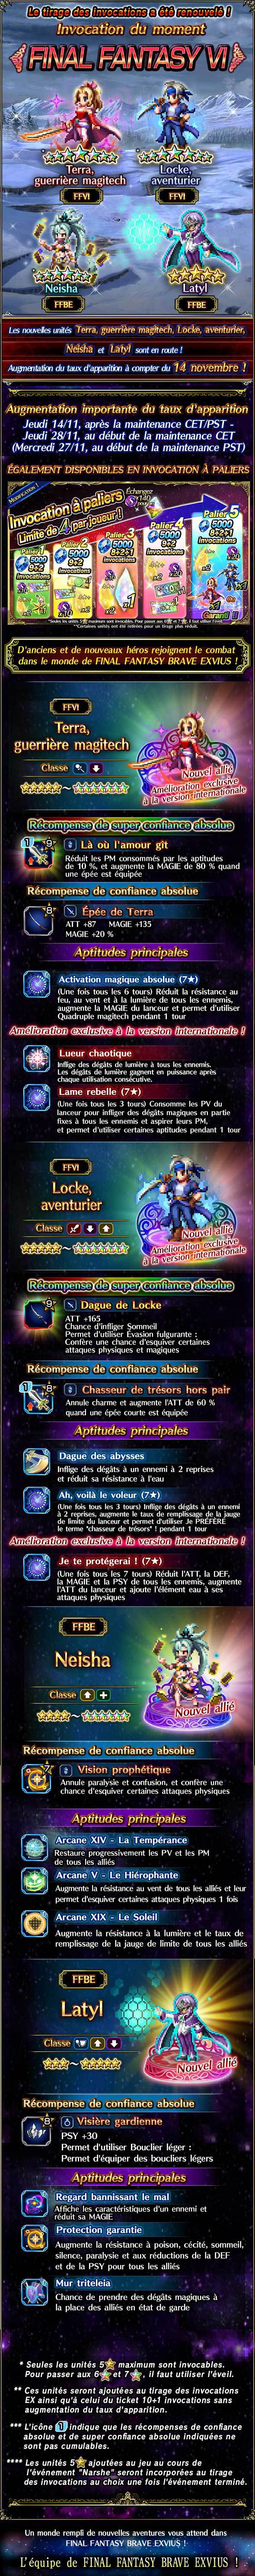 Invocations du moment, boutique d'échange et ticket 5★ garantie - FFVI (MWTerra/ALocke) - du 14/11 au 28/11/19 20191112MWTerraALockeFeaturedSummon